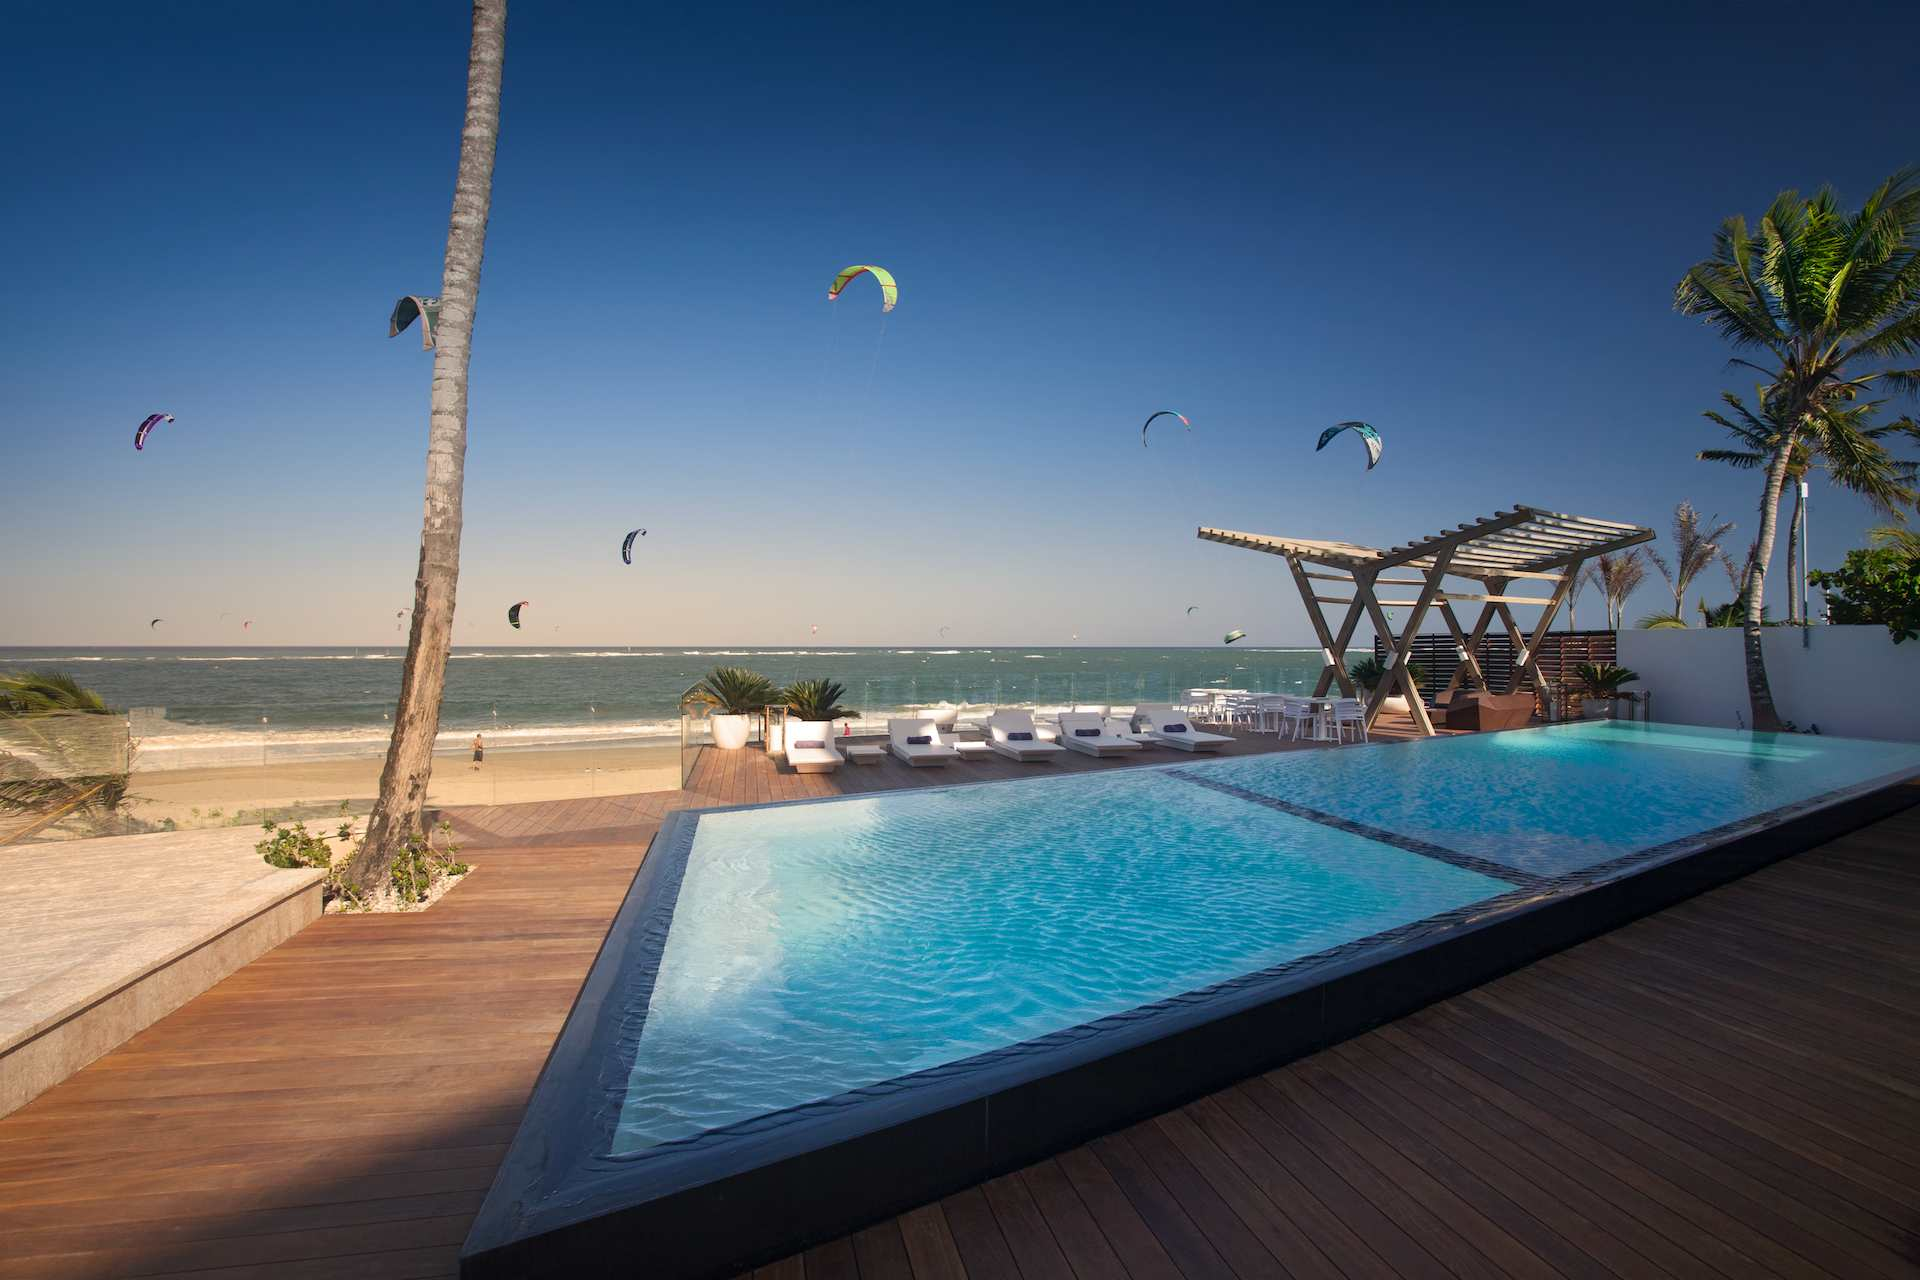 Hotels in cabarete: Ultravioleta Boutique Residence